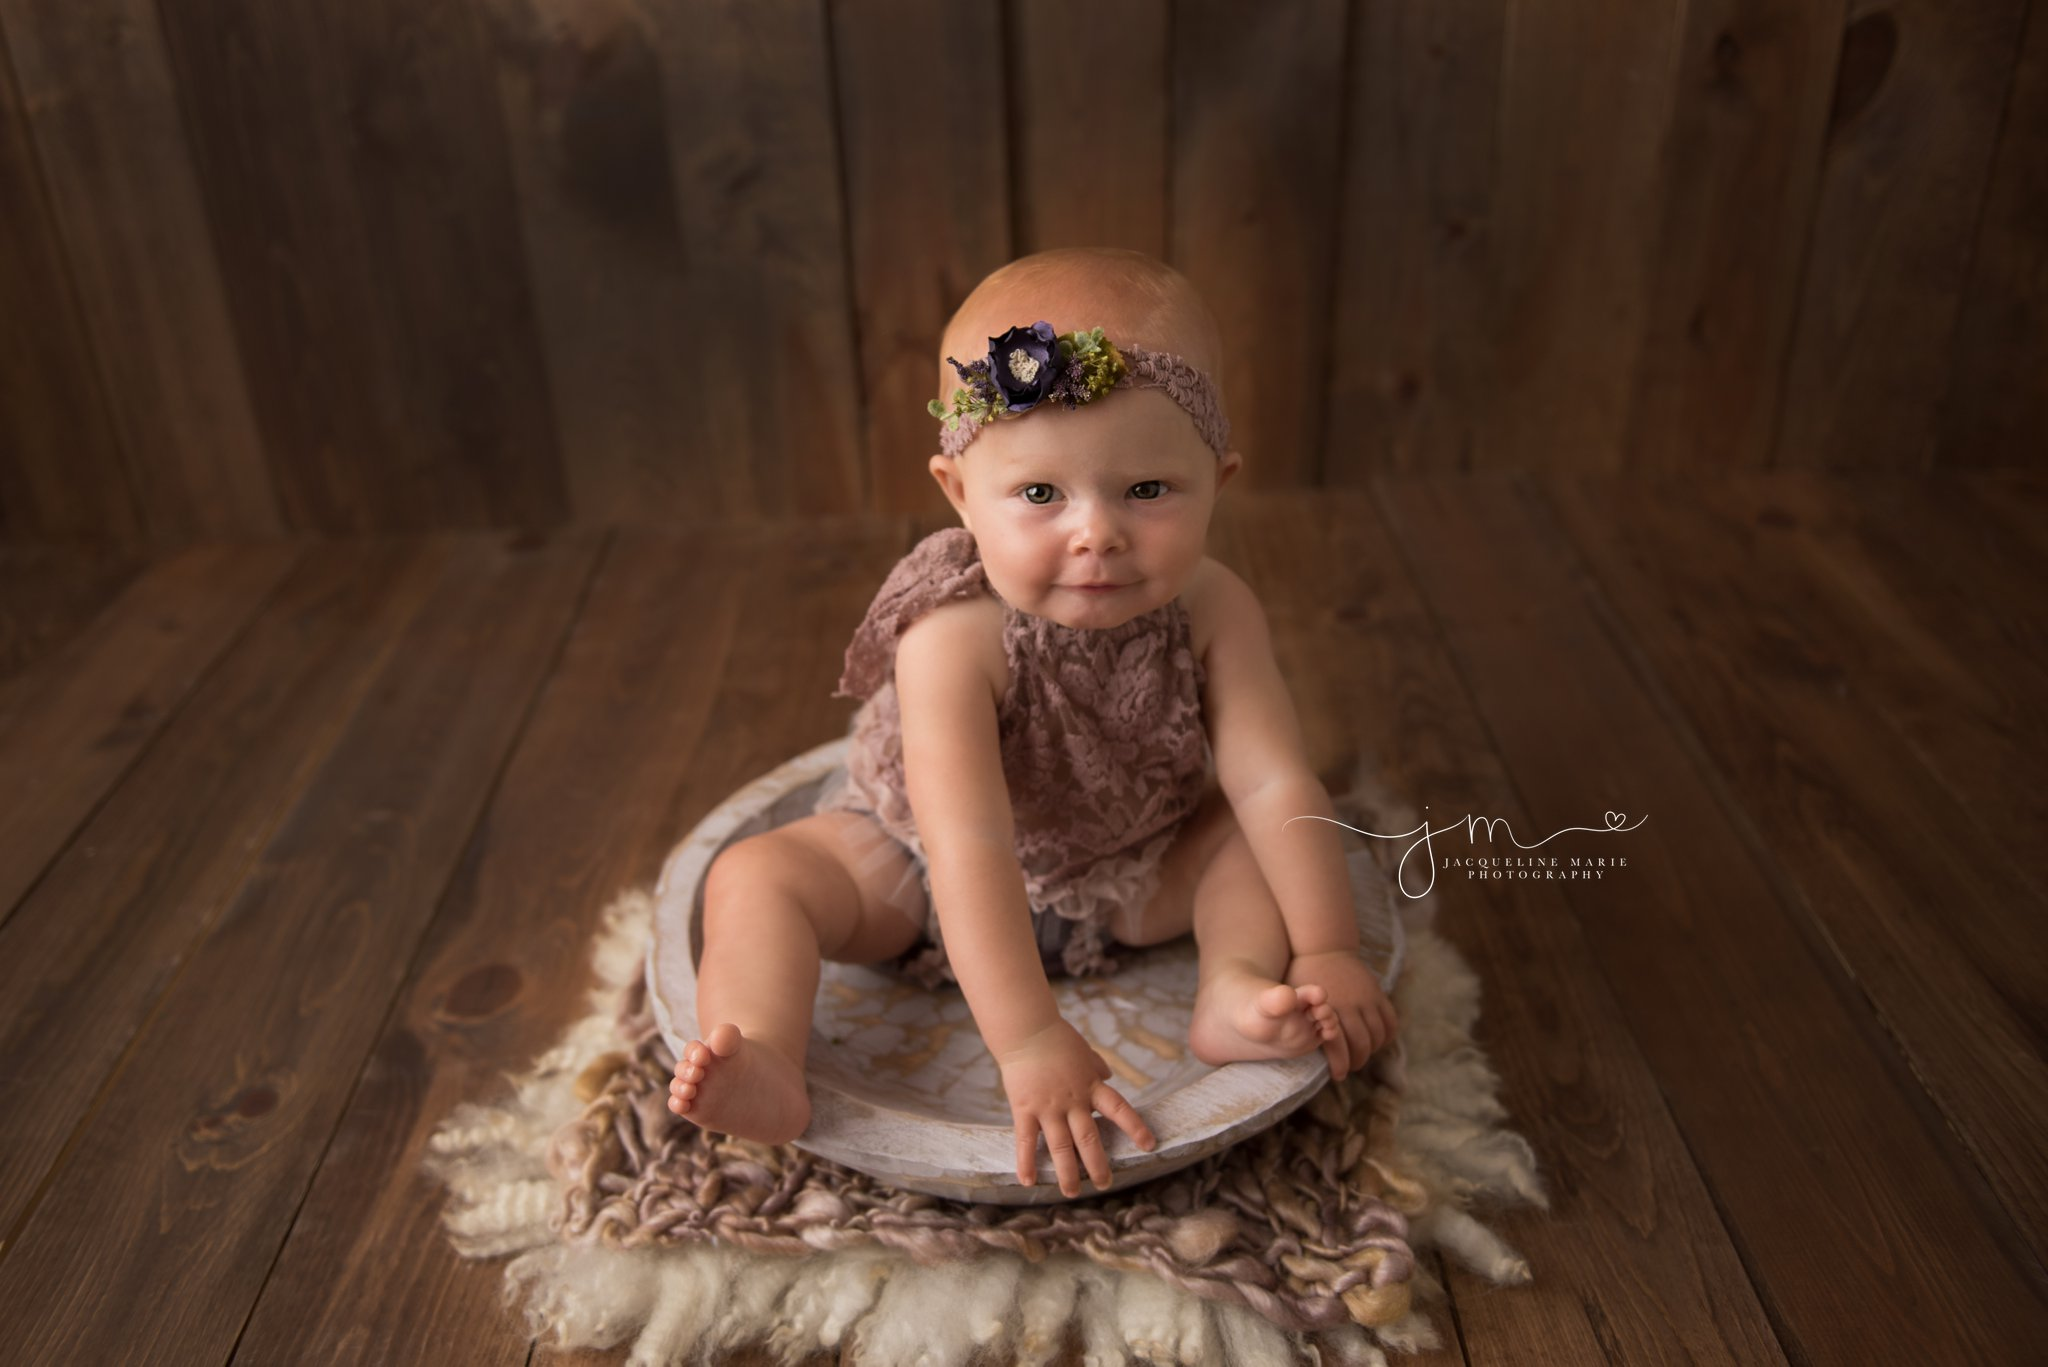 columbus ohio baby photographer features image of 8 month old baby sitting on purple wood bowl